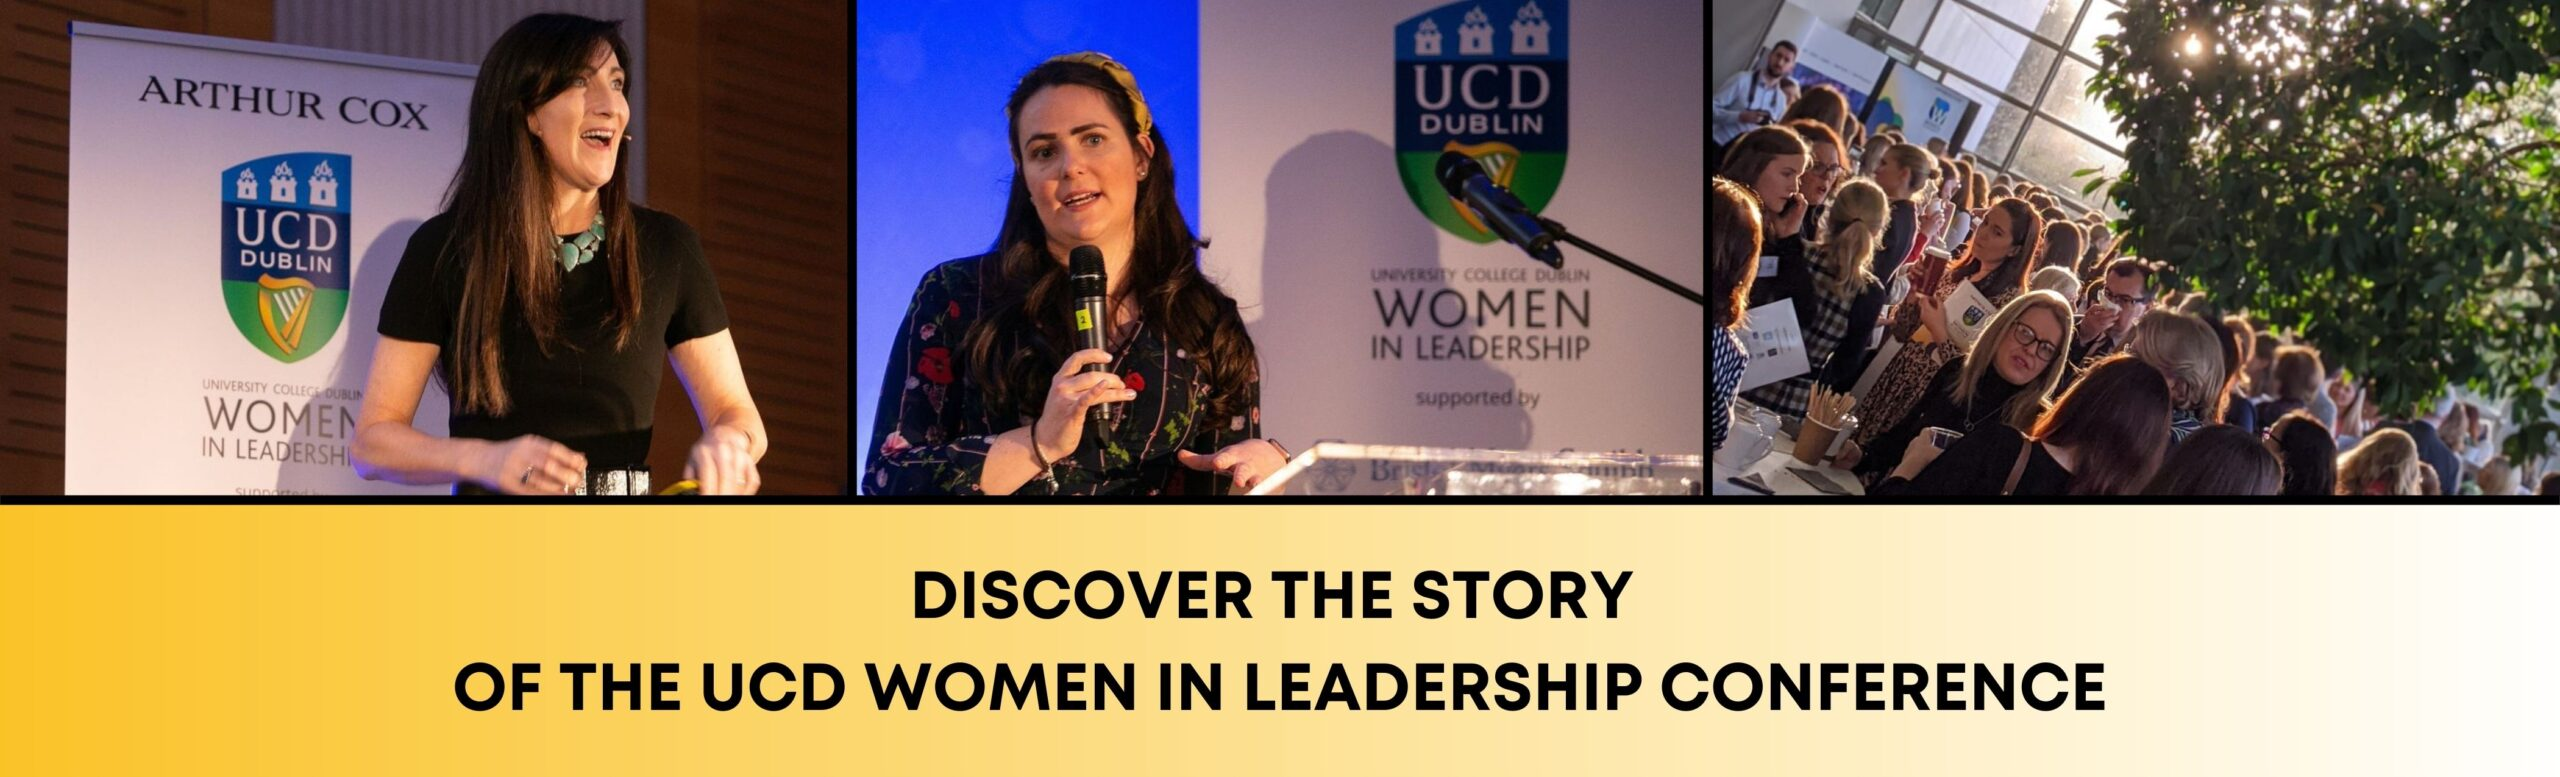 find the story of ucd women in leadership